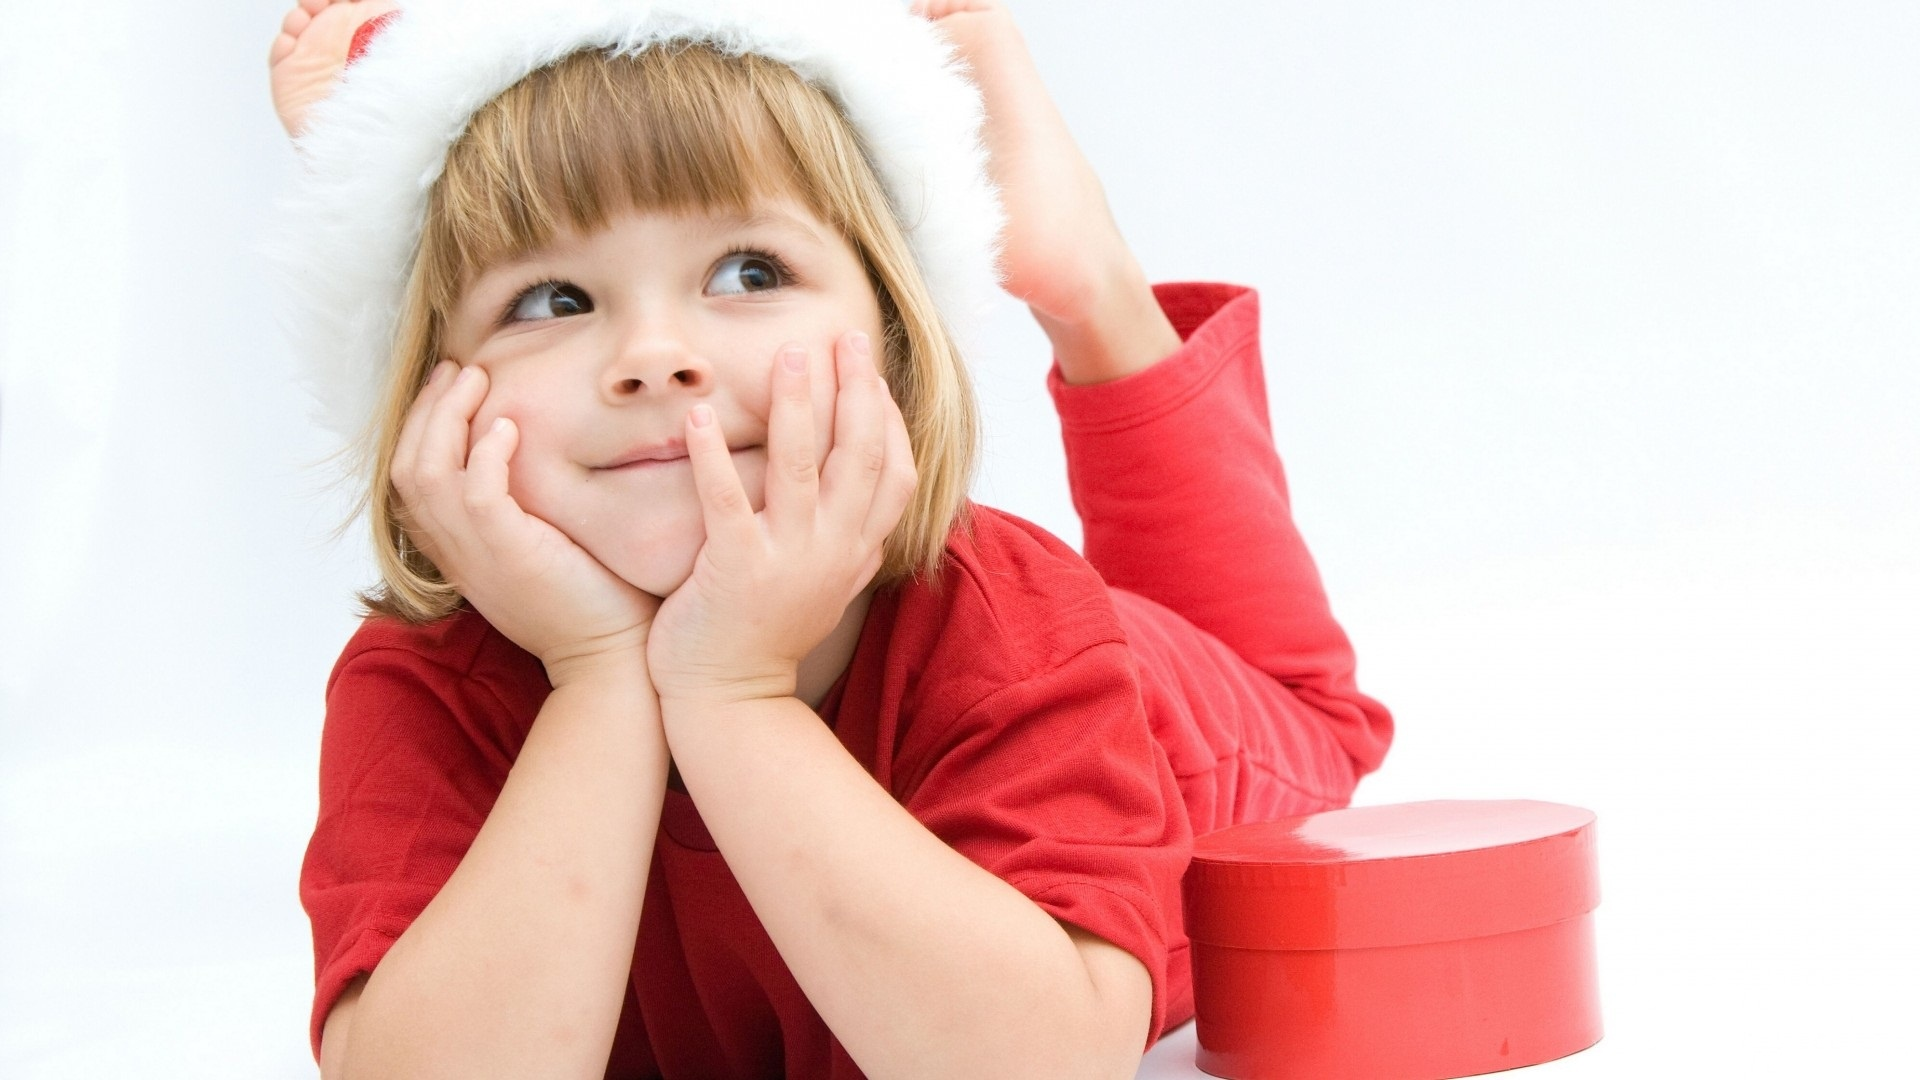 Christmas Kid In Santa Hat On White Background Wallpapers - 1920x1080 ...